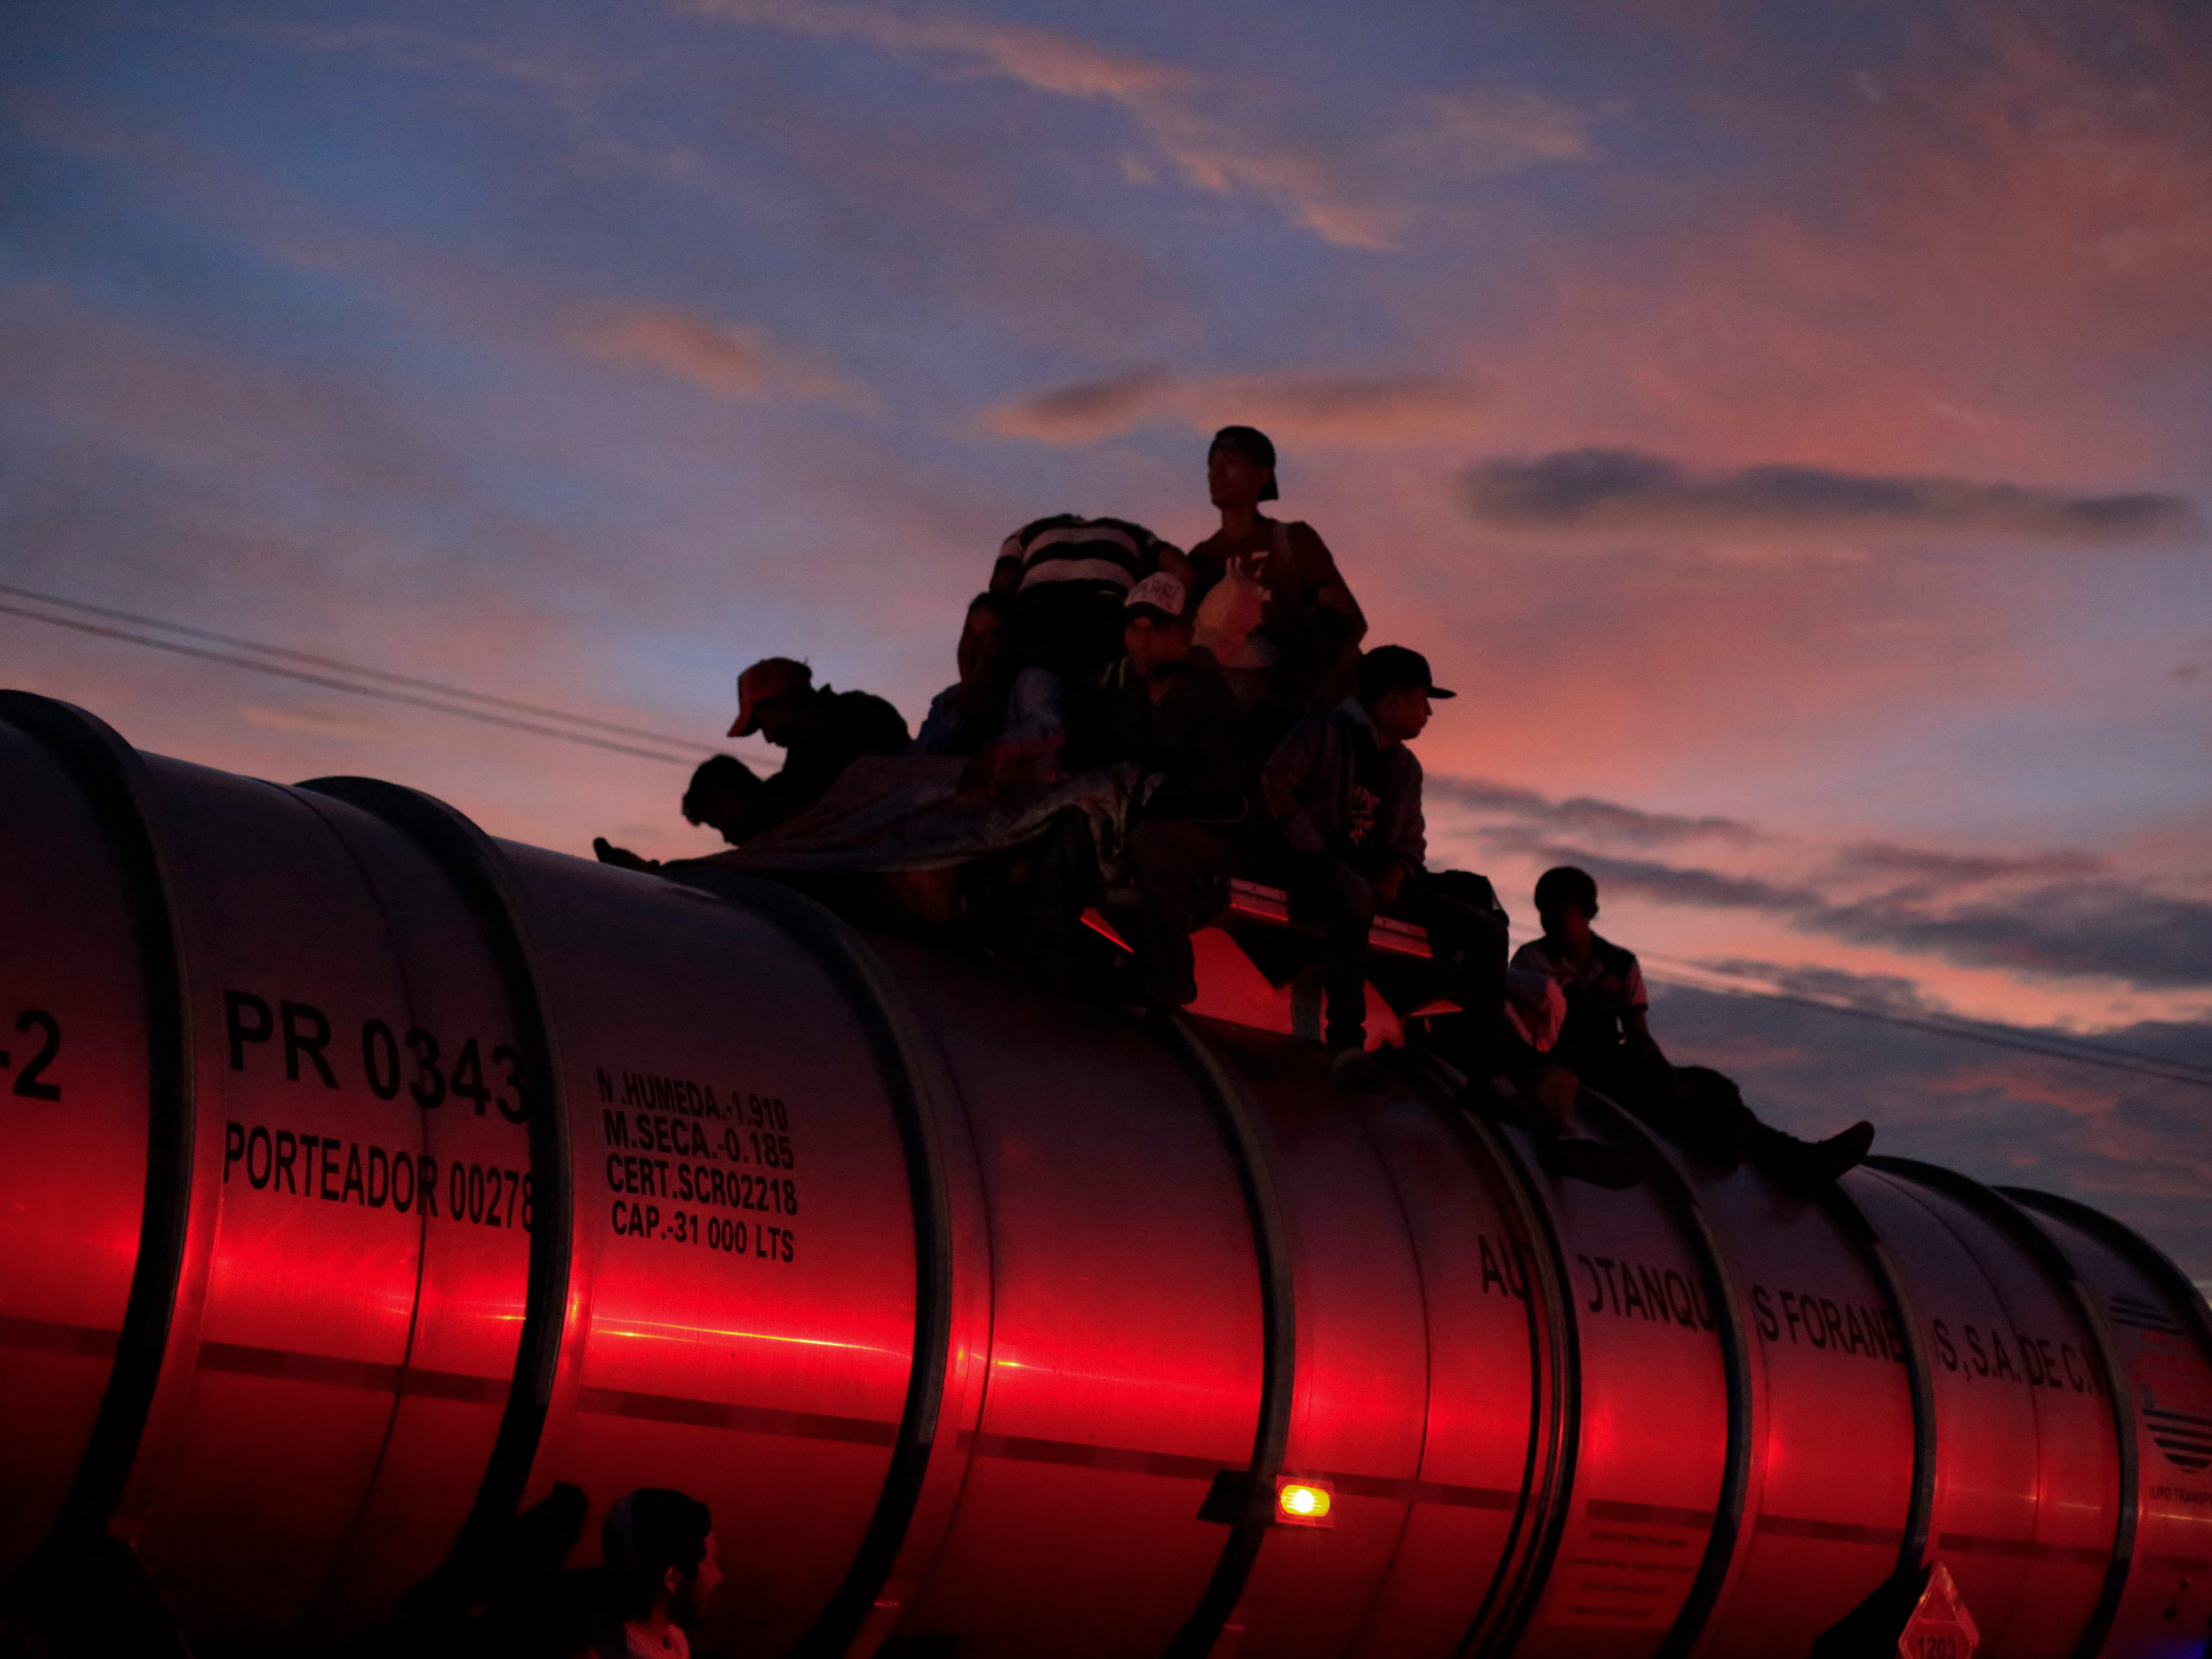 Migrants wait aboard a parked tanker in hopes that the driver will give them a ride, as a caravan of Central Americans continues its slow march toward the U.S. border, near Tapanatepec, Mexico, at dawn on Monday, Oct. 29, 2018. Thousands of migrants traveling together for safety resumed their journey after taking a rest day Sunday, while hundreds more migrants were pushing for entry to Mexico.